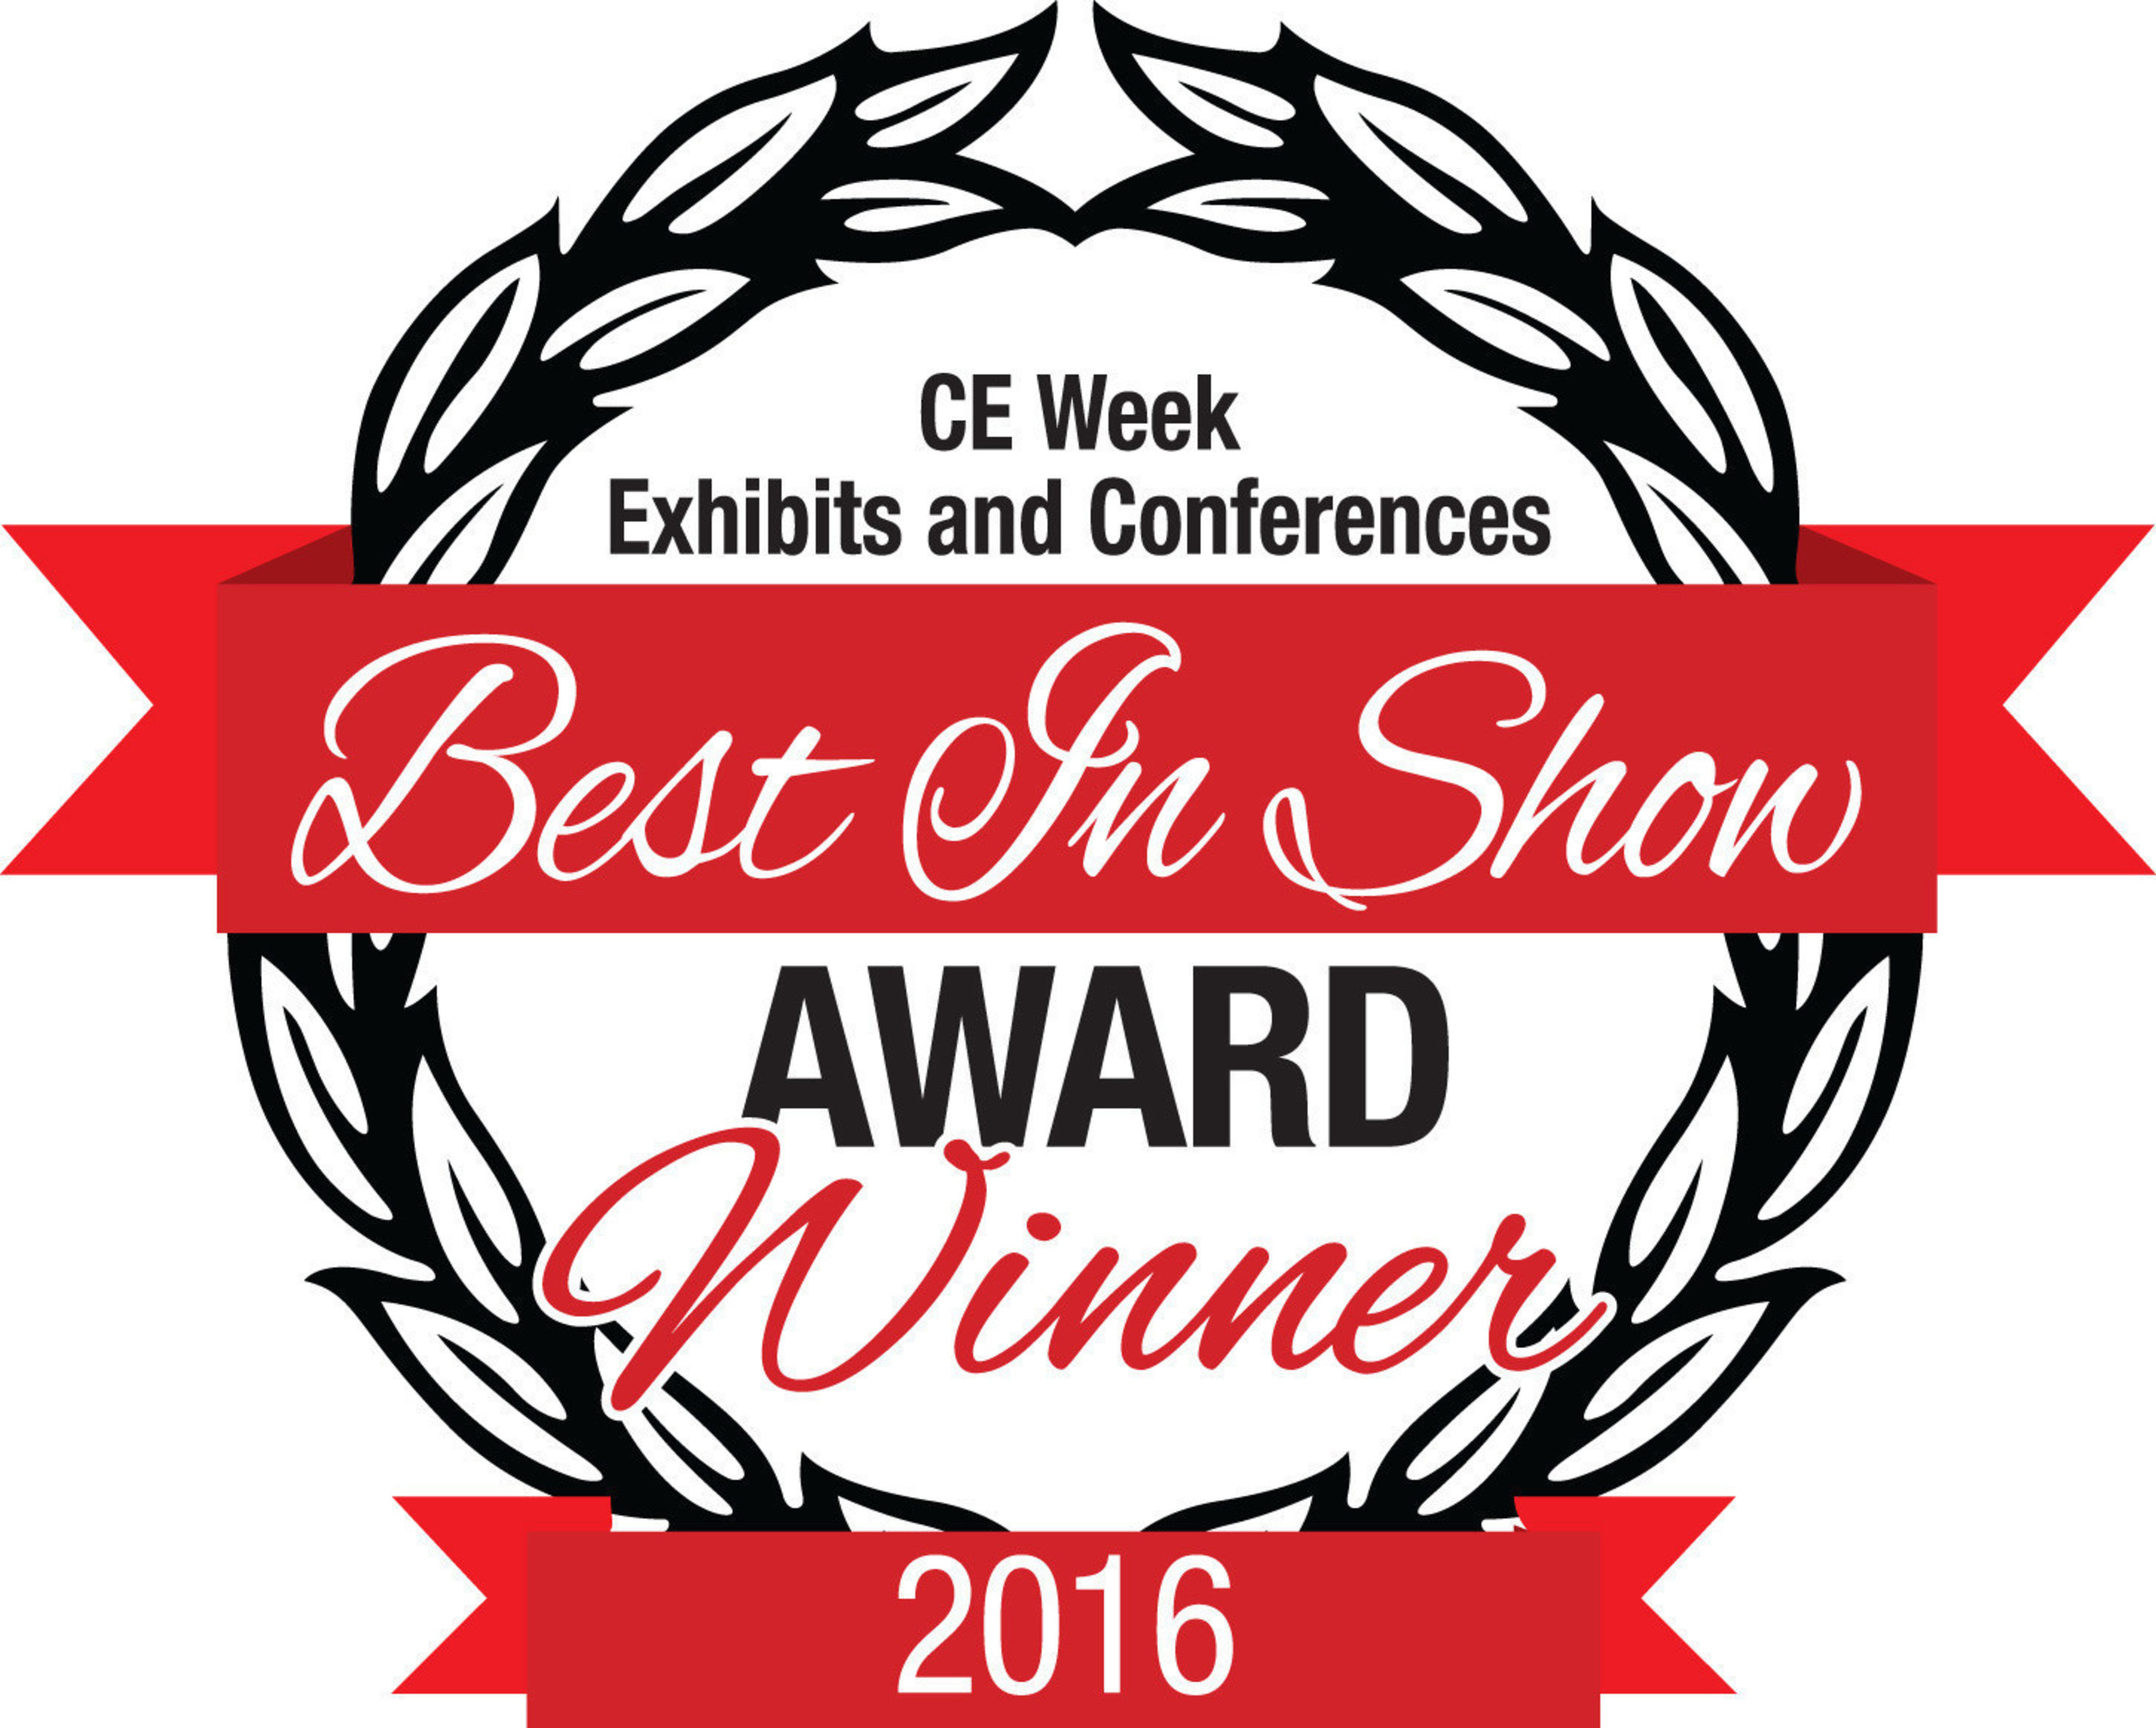 The new Epson Pro Cinema 6040UB projector was named a CE Week Best in Show winner.